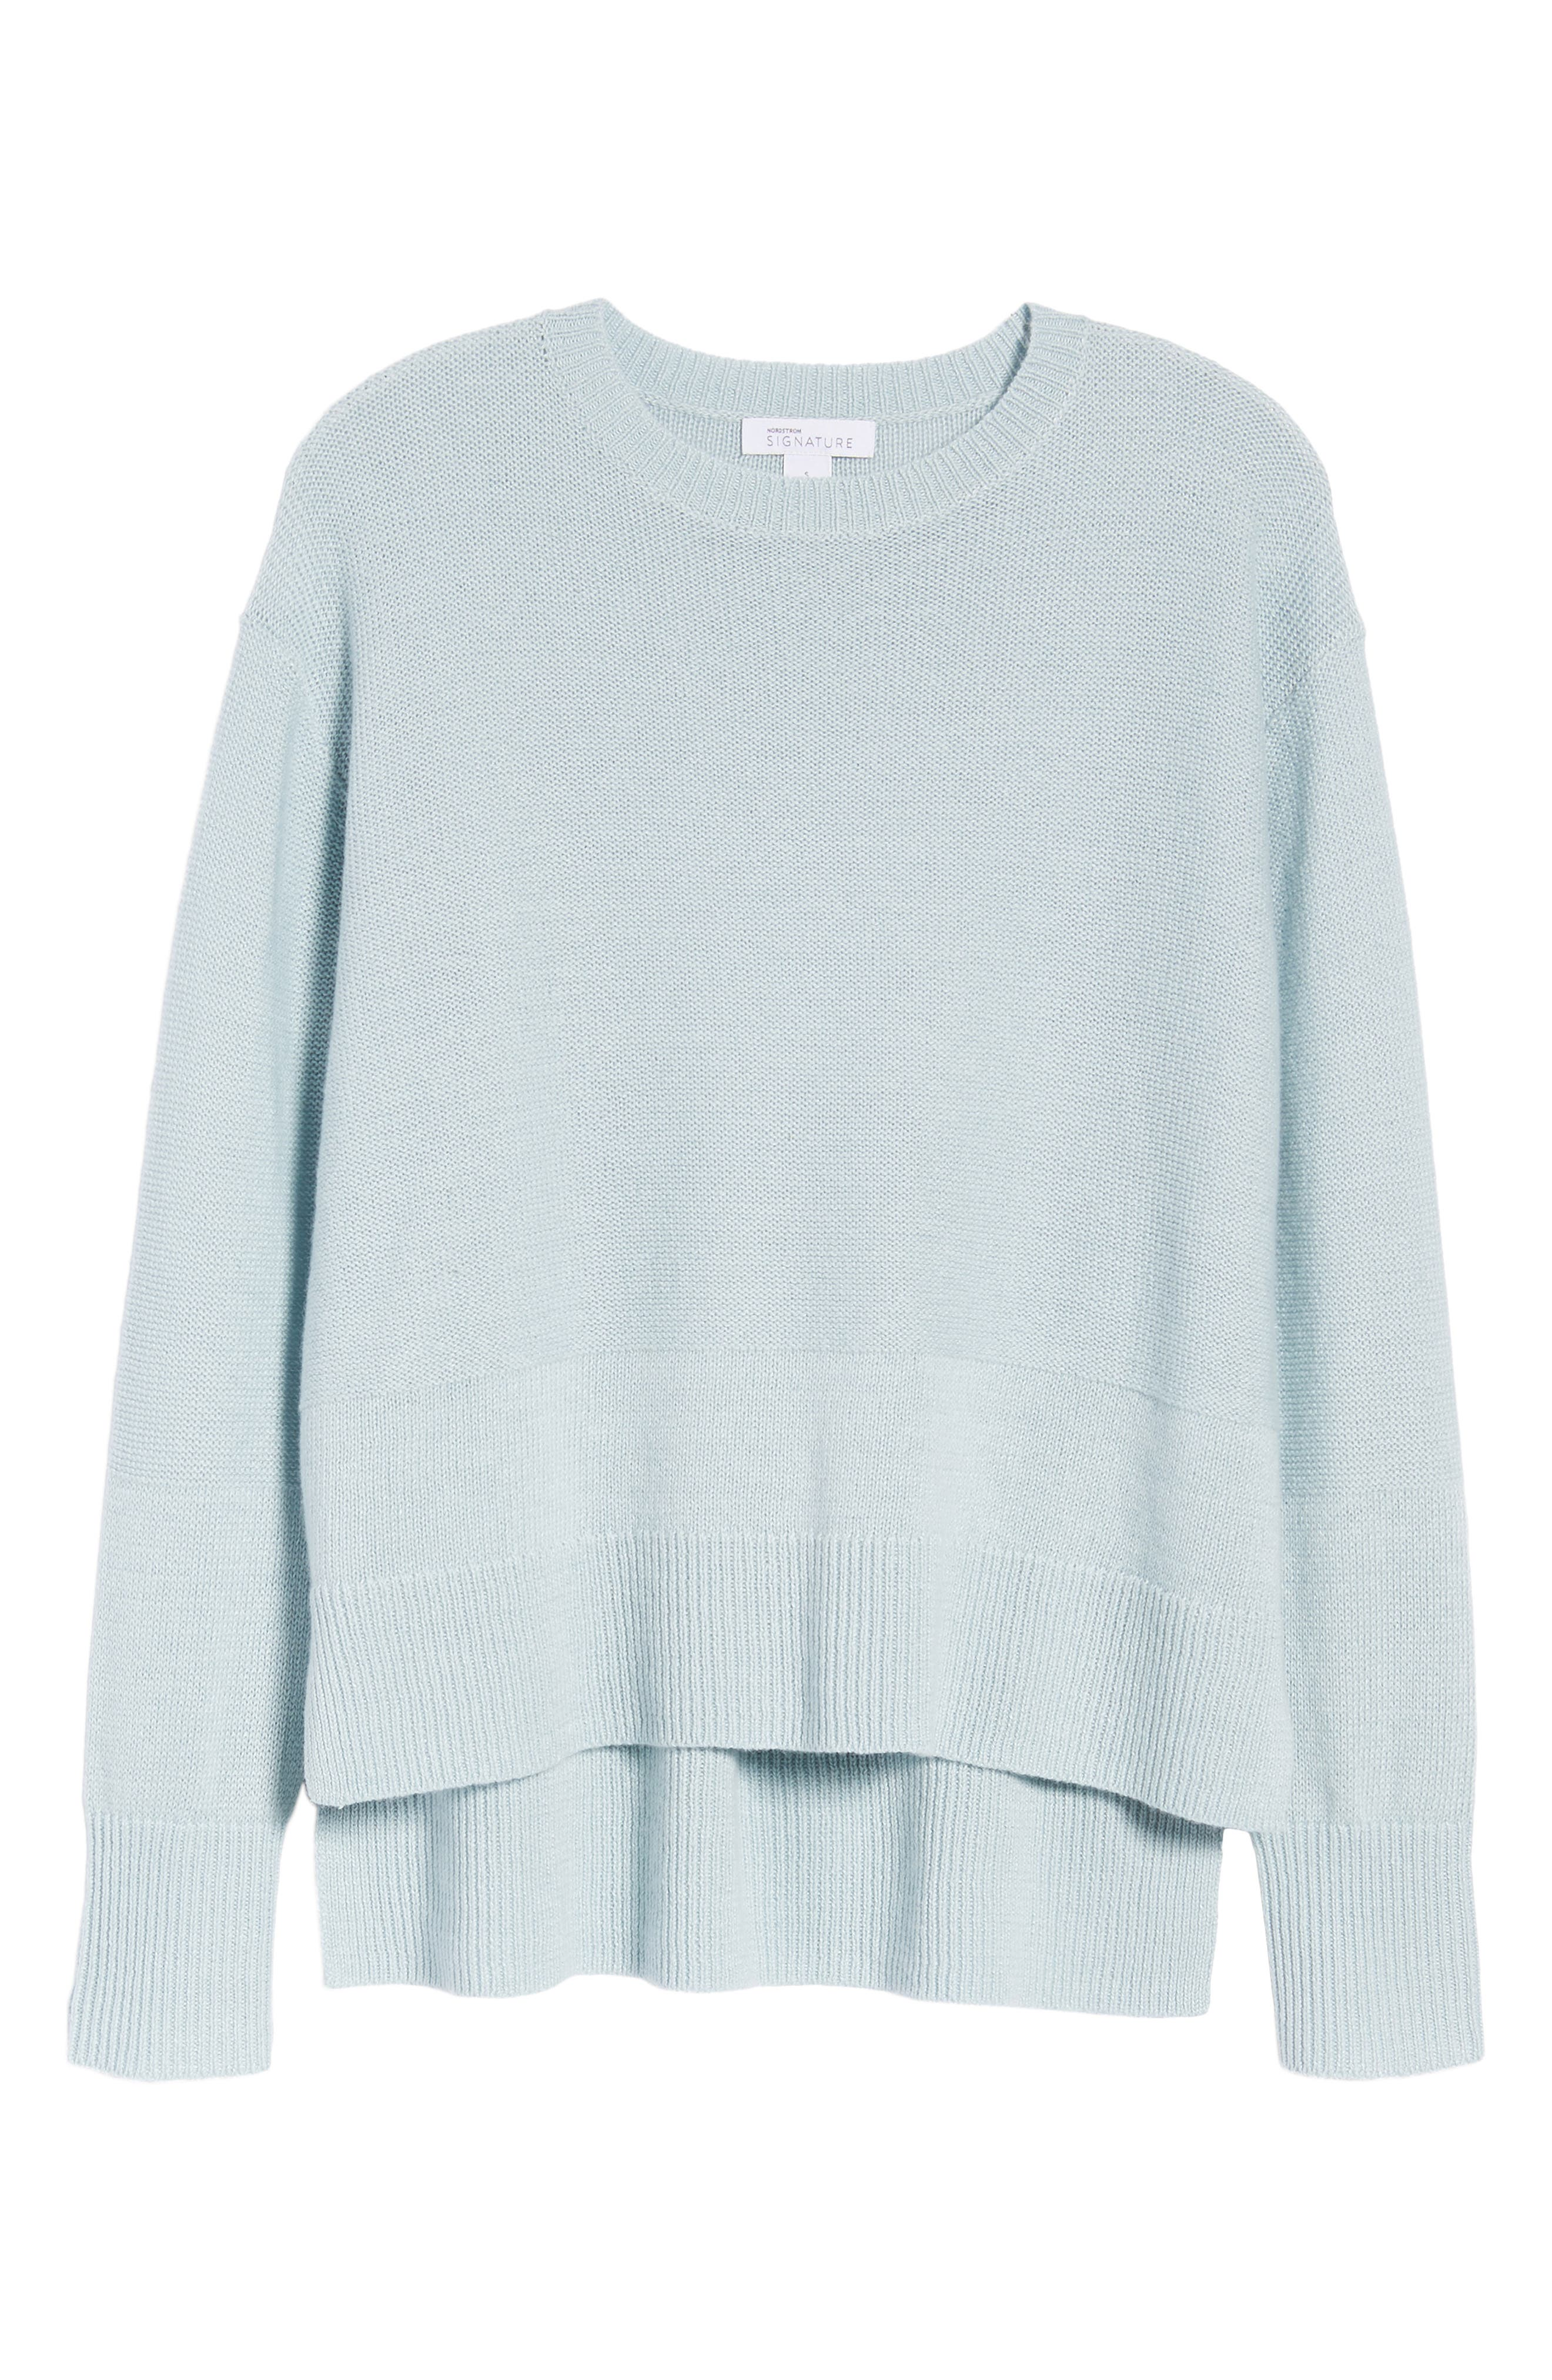 Linen & Cashmere Sweater,                             Alternate thumbnail 6, color,                             Teal Steam